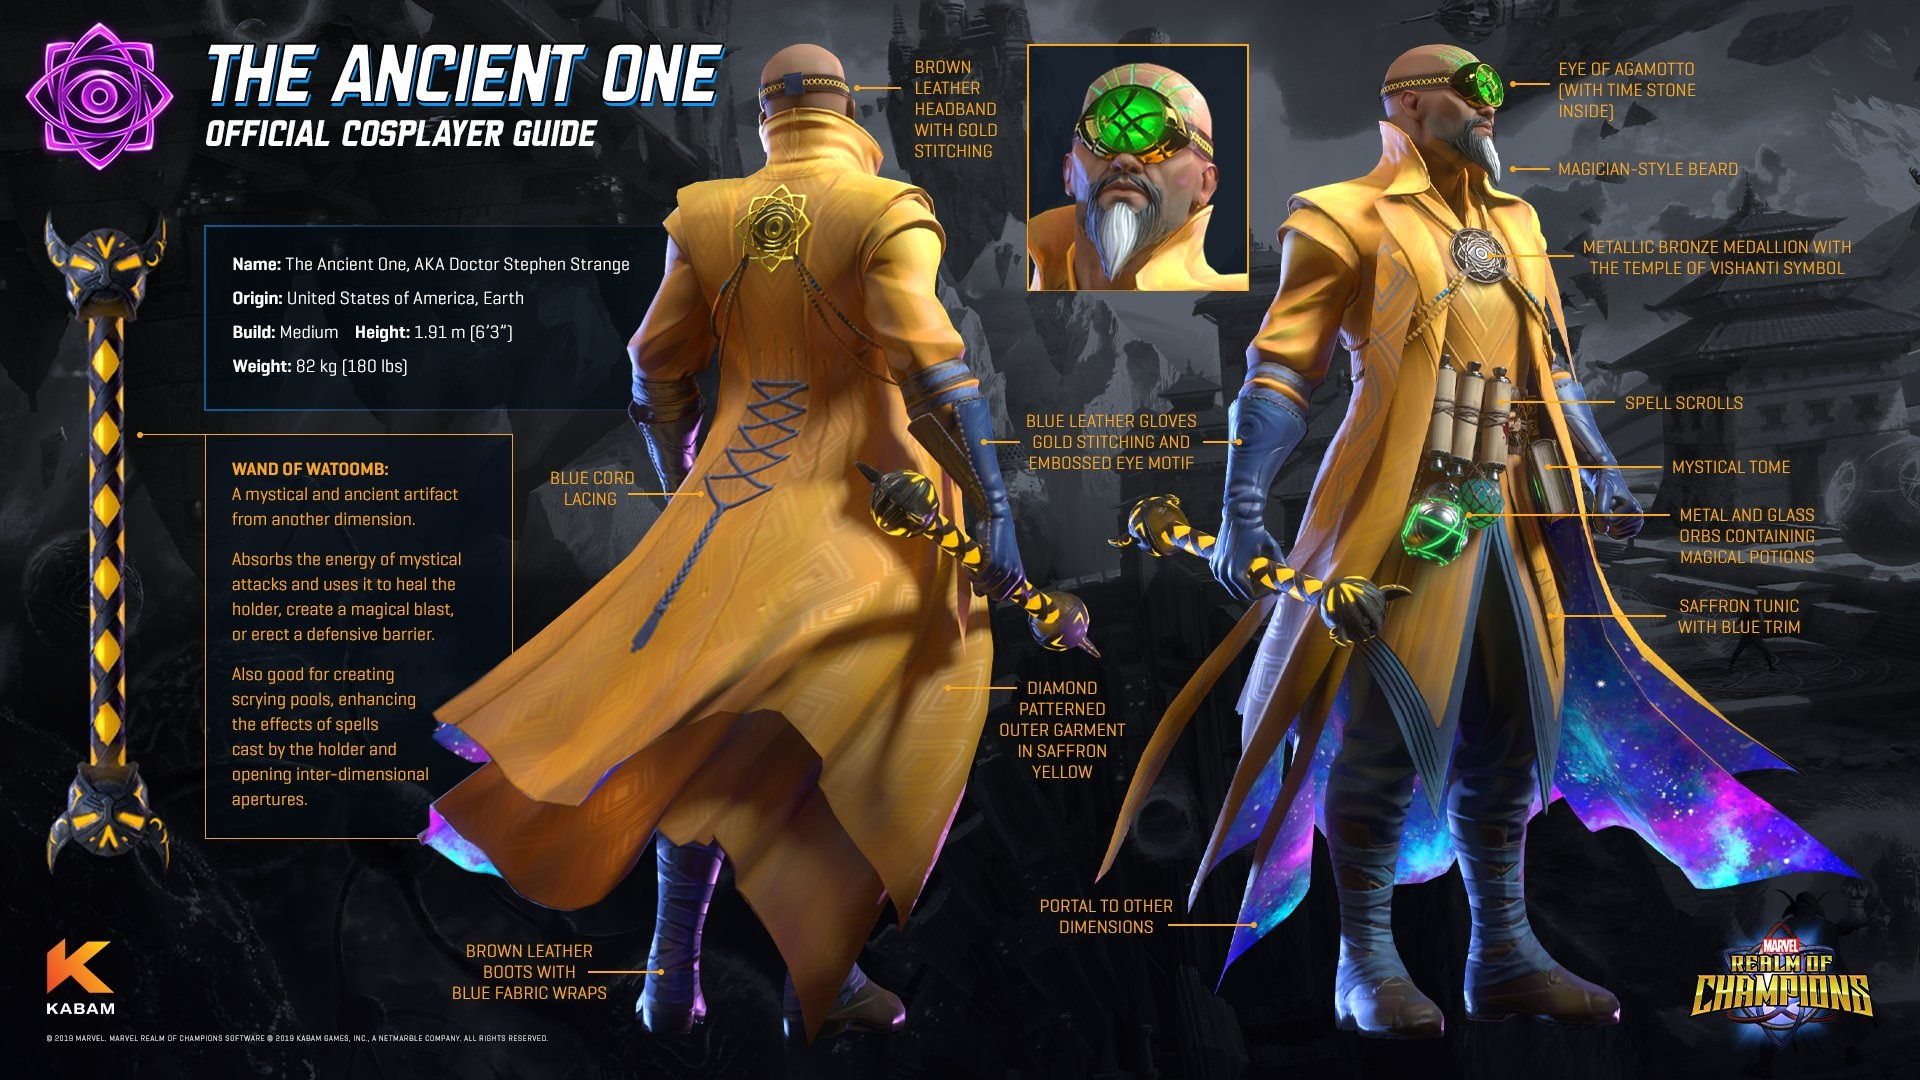 Marvel Realm of Champions The Ancient One Official Cosplayer Guide.jpg